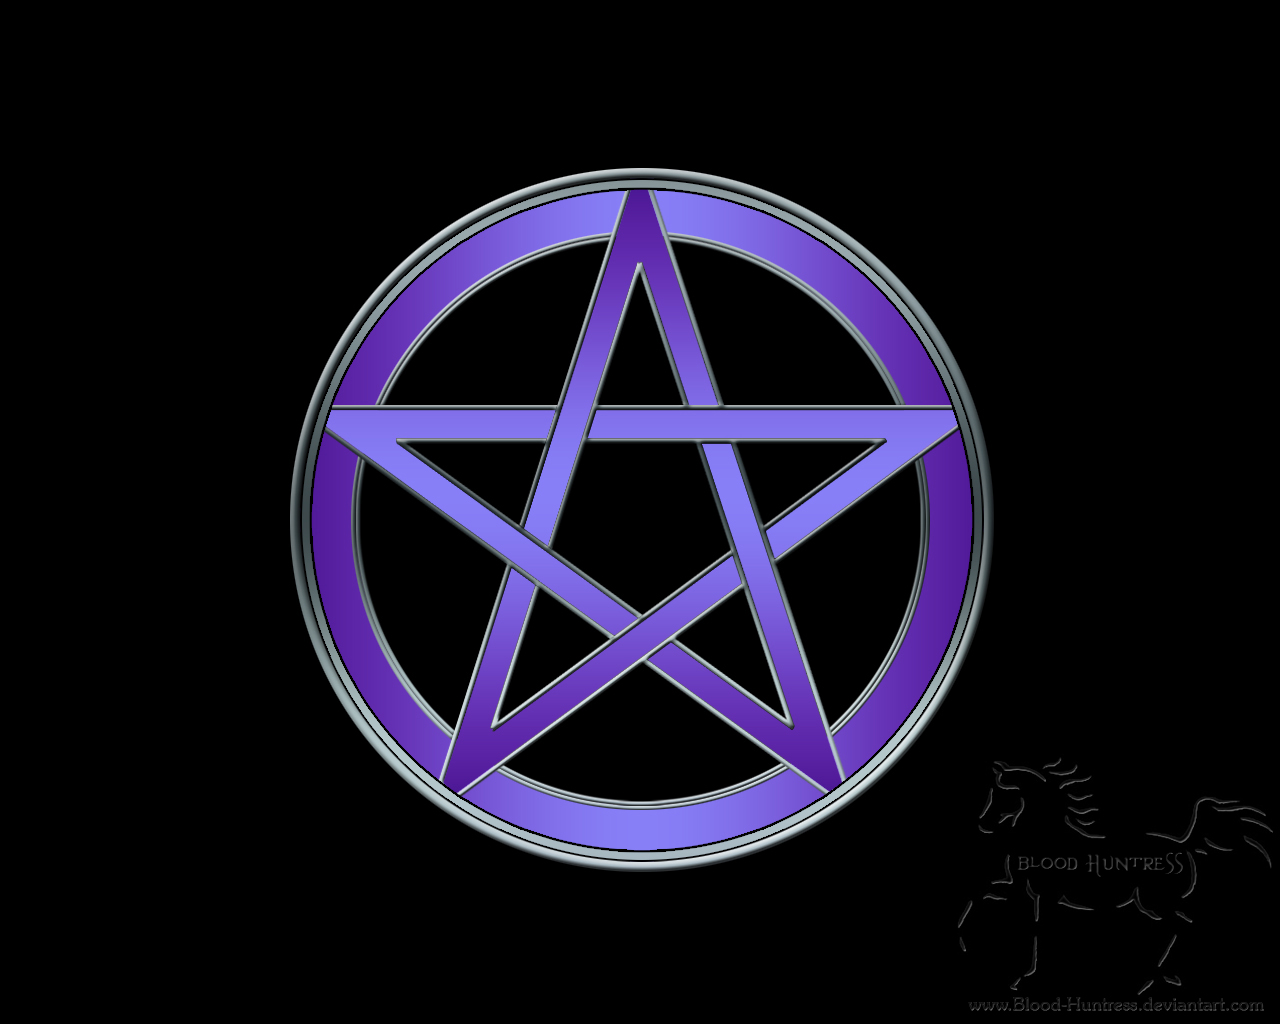 Plain Pentacle by Blood Huntress 1280x1024